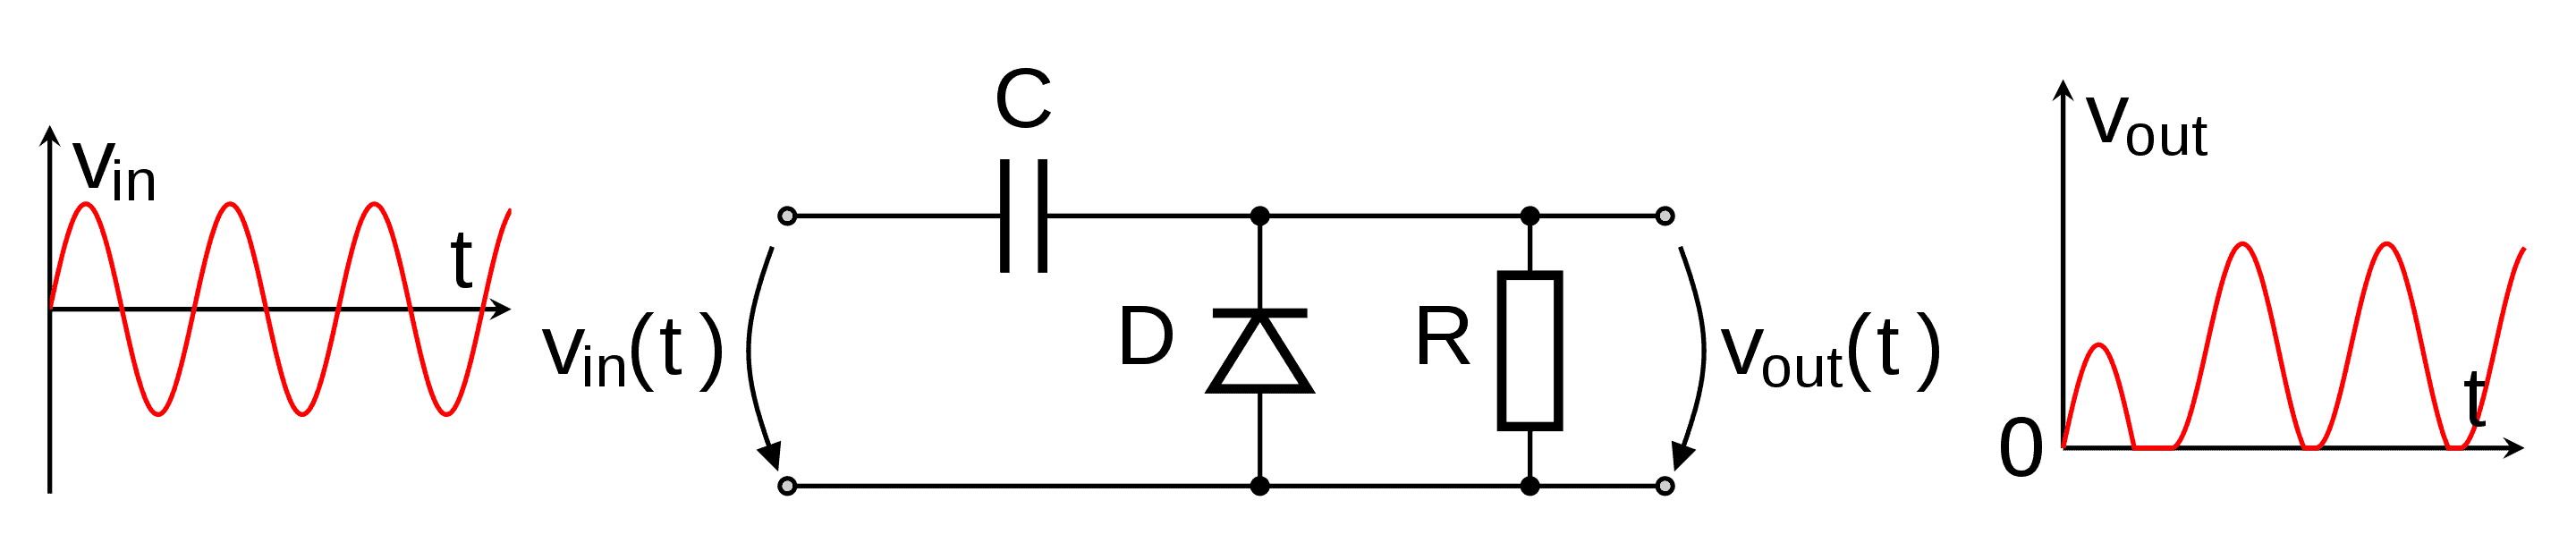 Clamp Circuit diagram